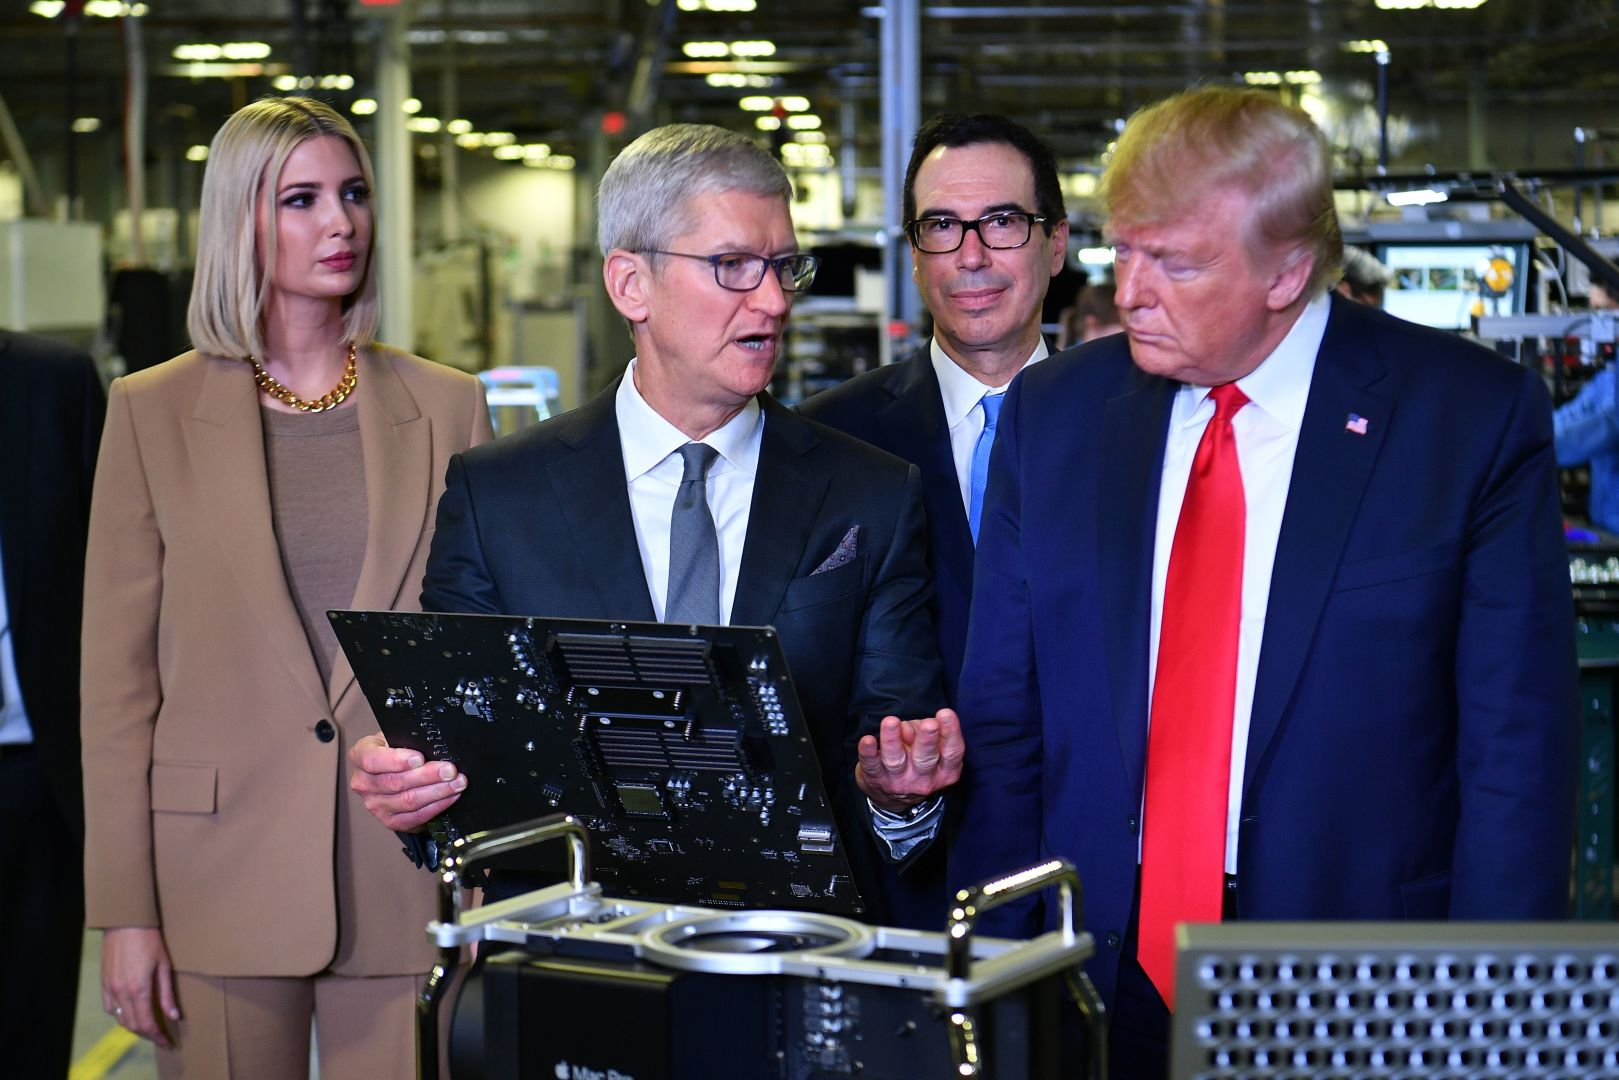 Trump Boasted About A 'New' Apple Plant In Texas. It Opened In 2013.